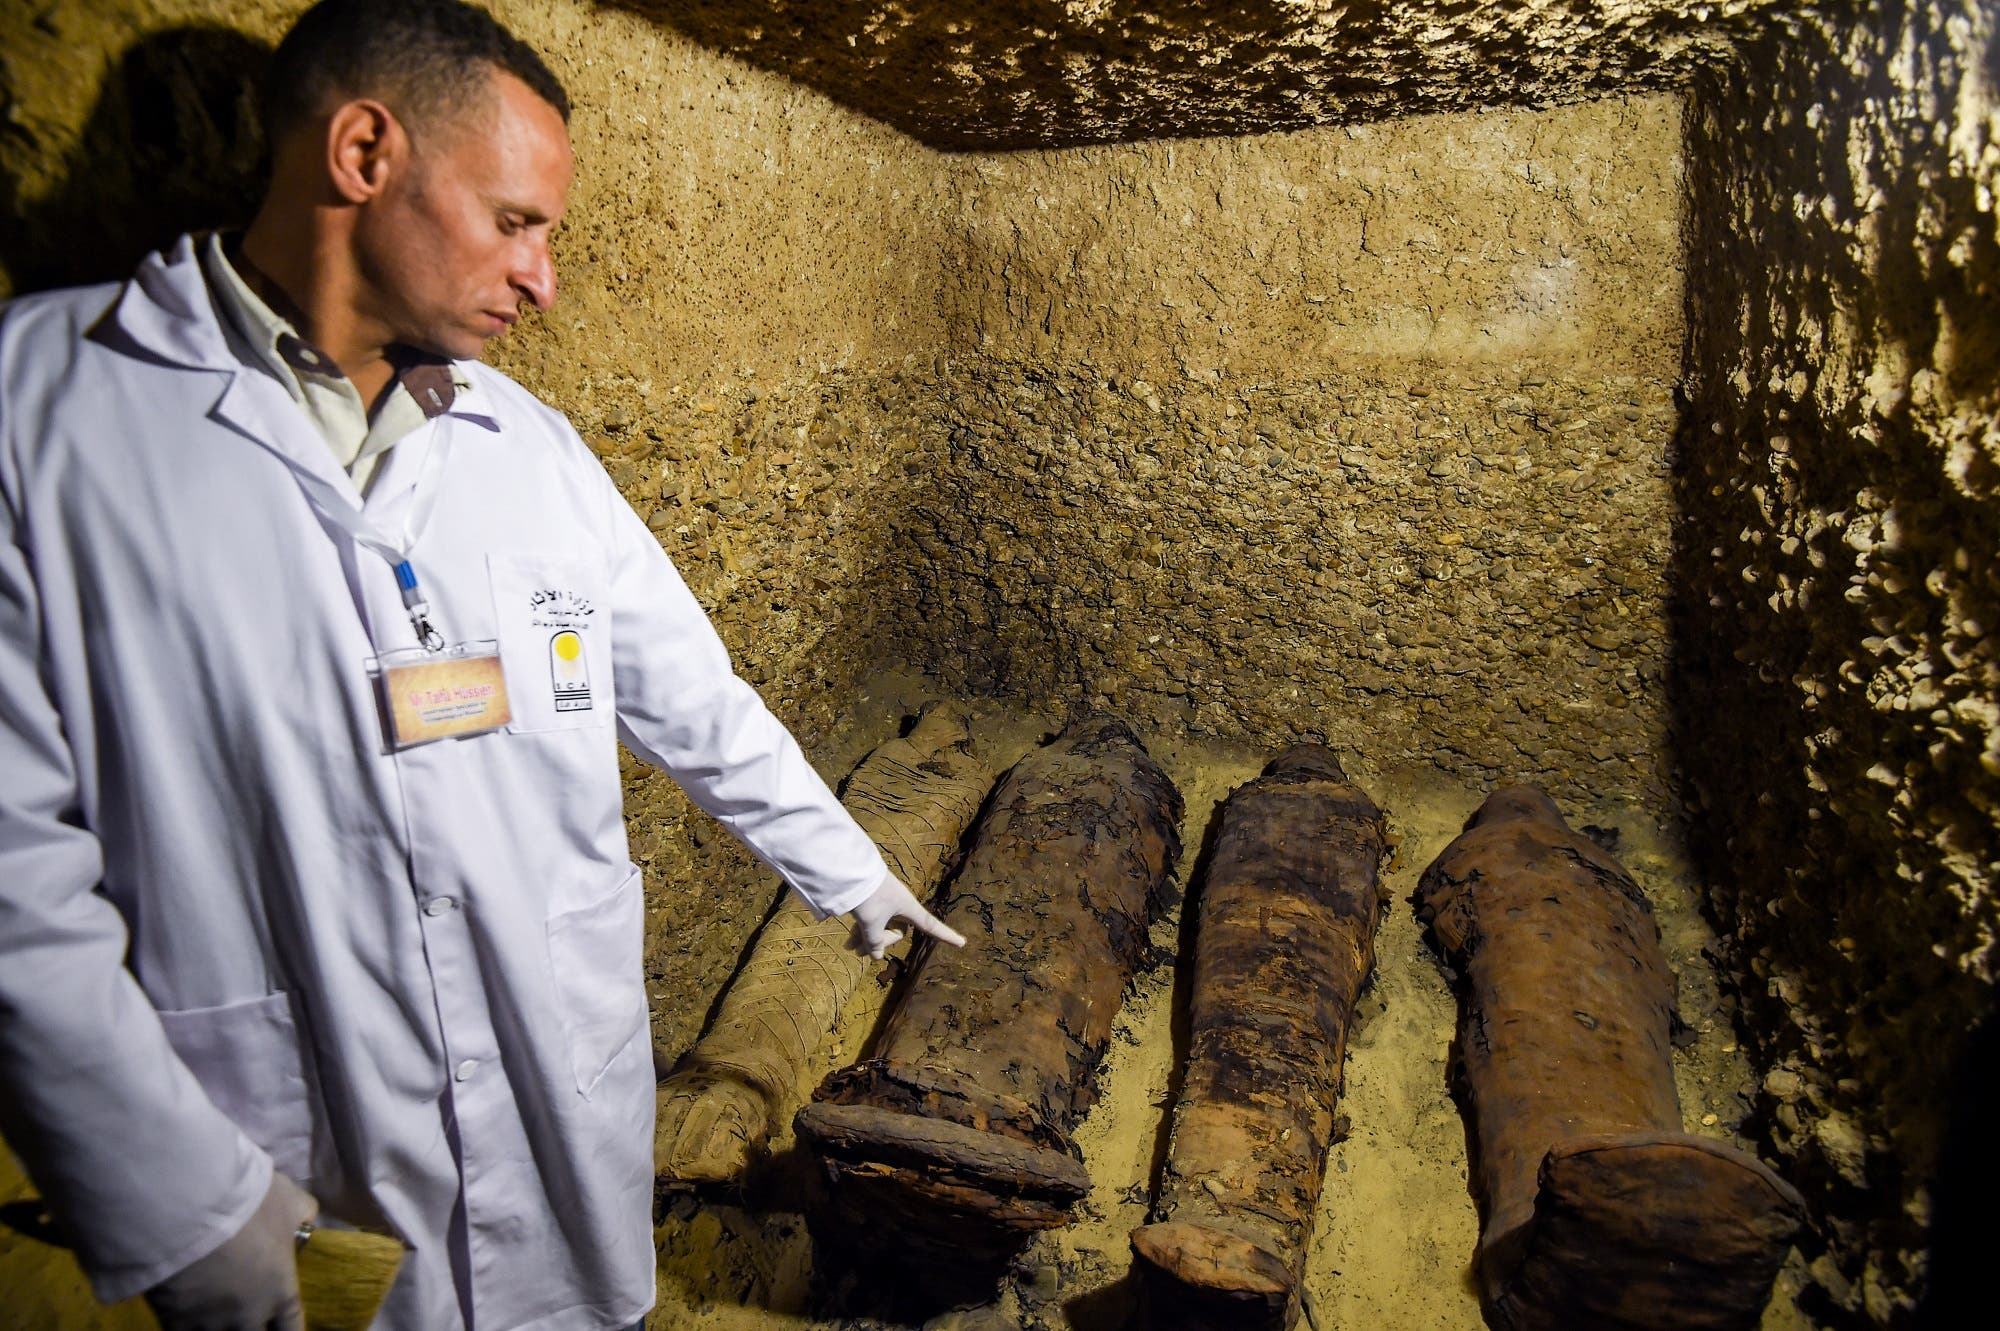 The mummies, 12 of which were of children, were discovered inside four, nine-meter deep burial chambers in the Tuna El-Gebel archaeological site. (AFP)